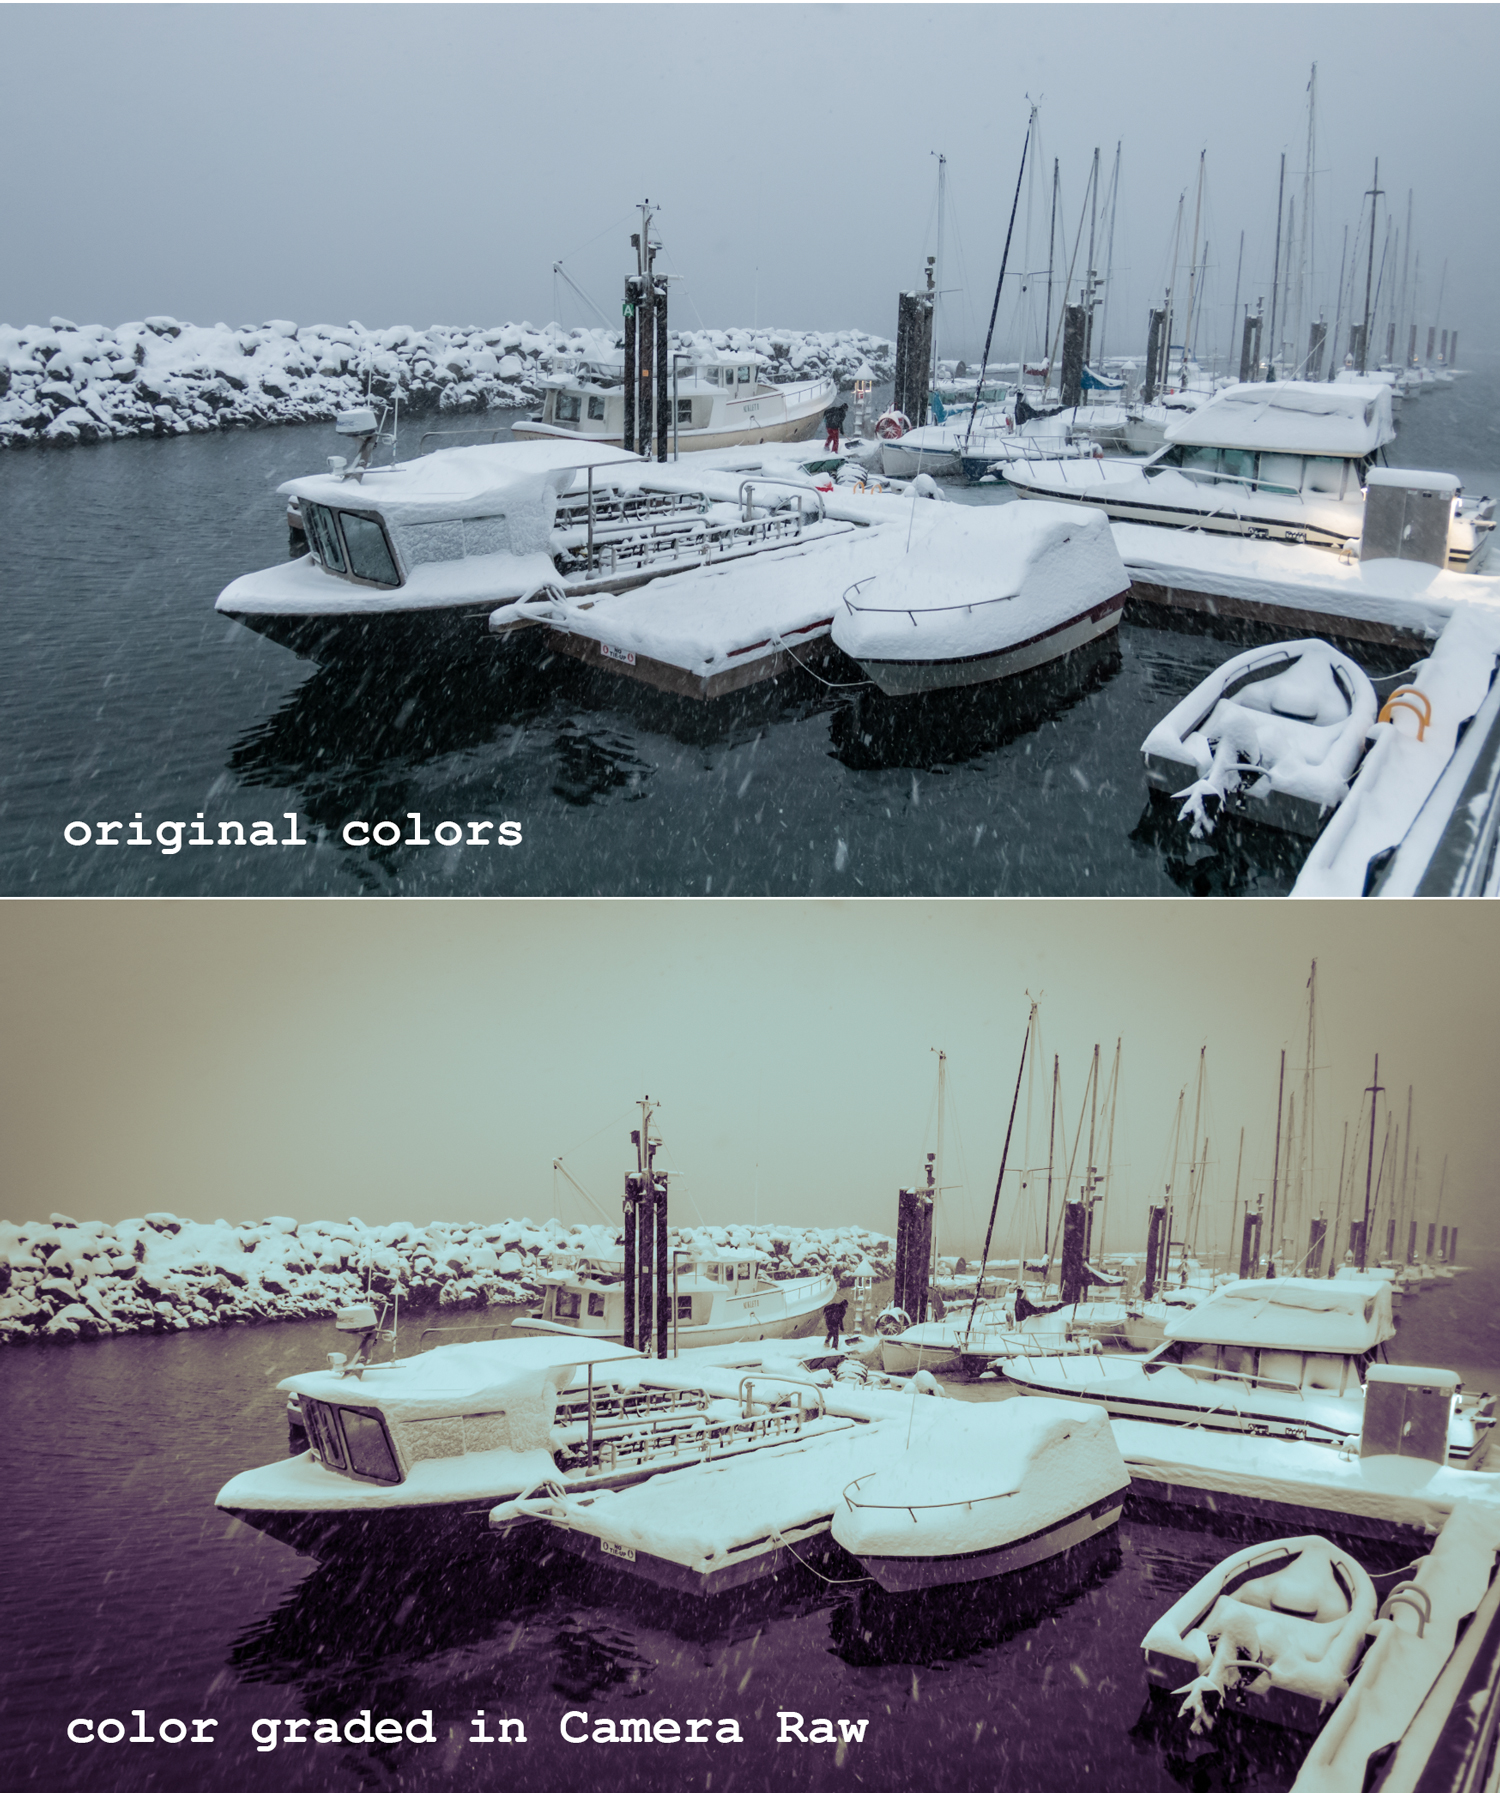 Snowy boat scene before and after applying Color Grading in Camera Raw